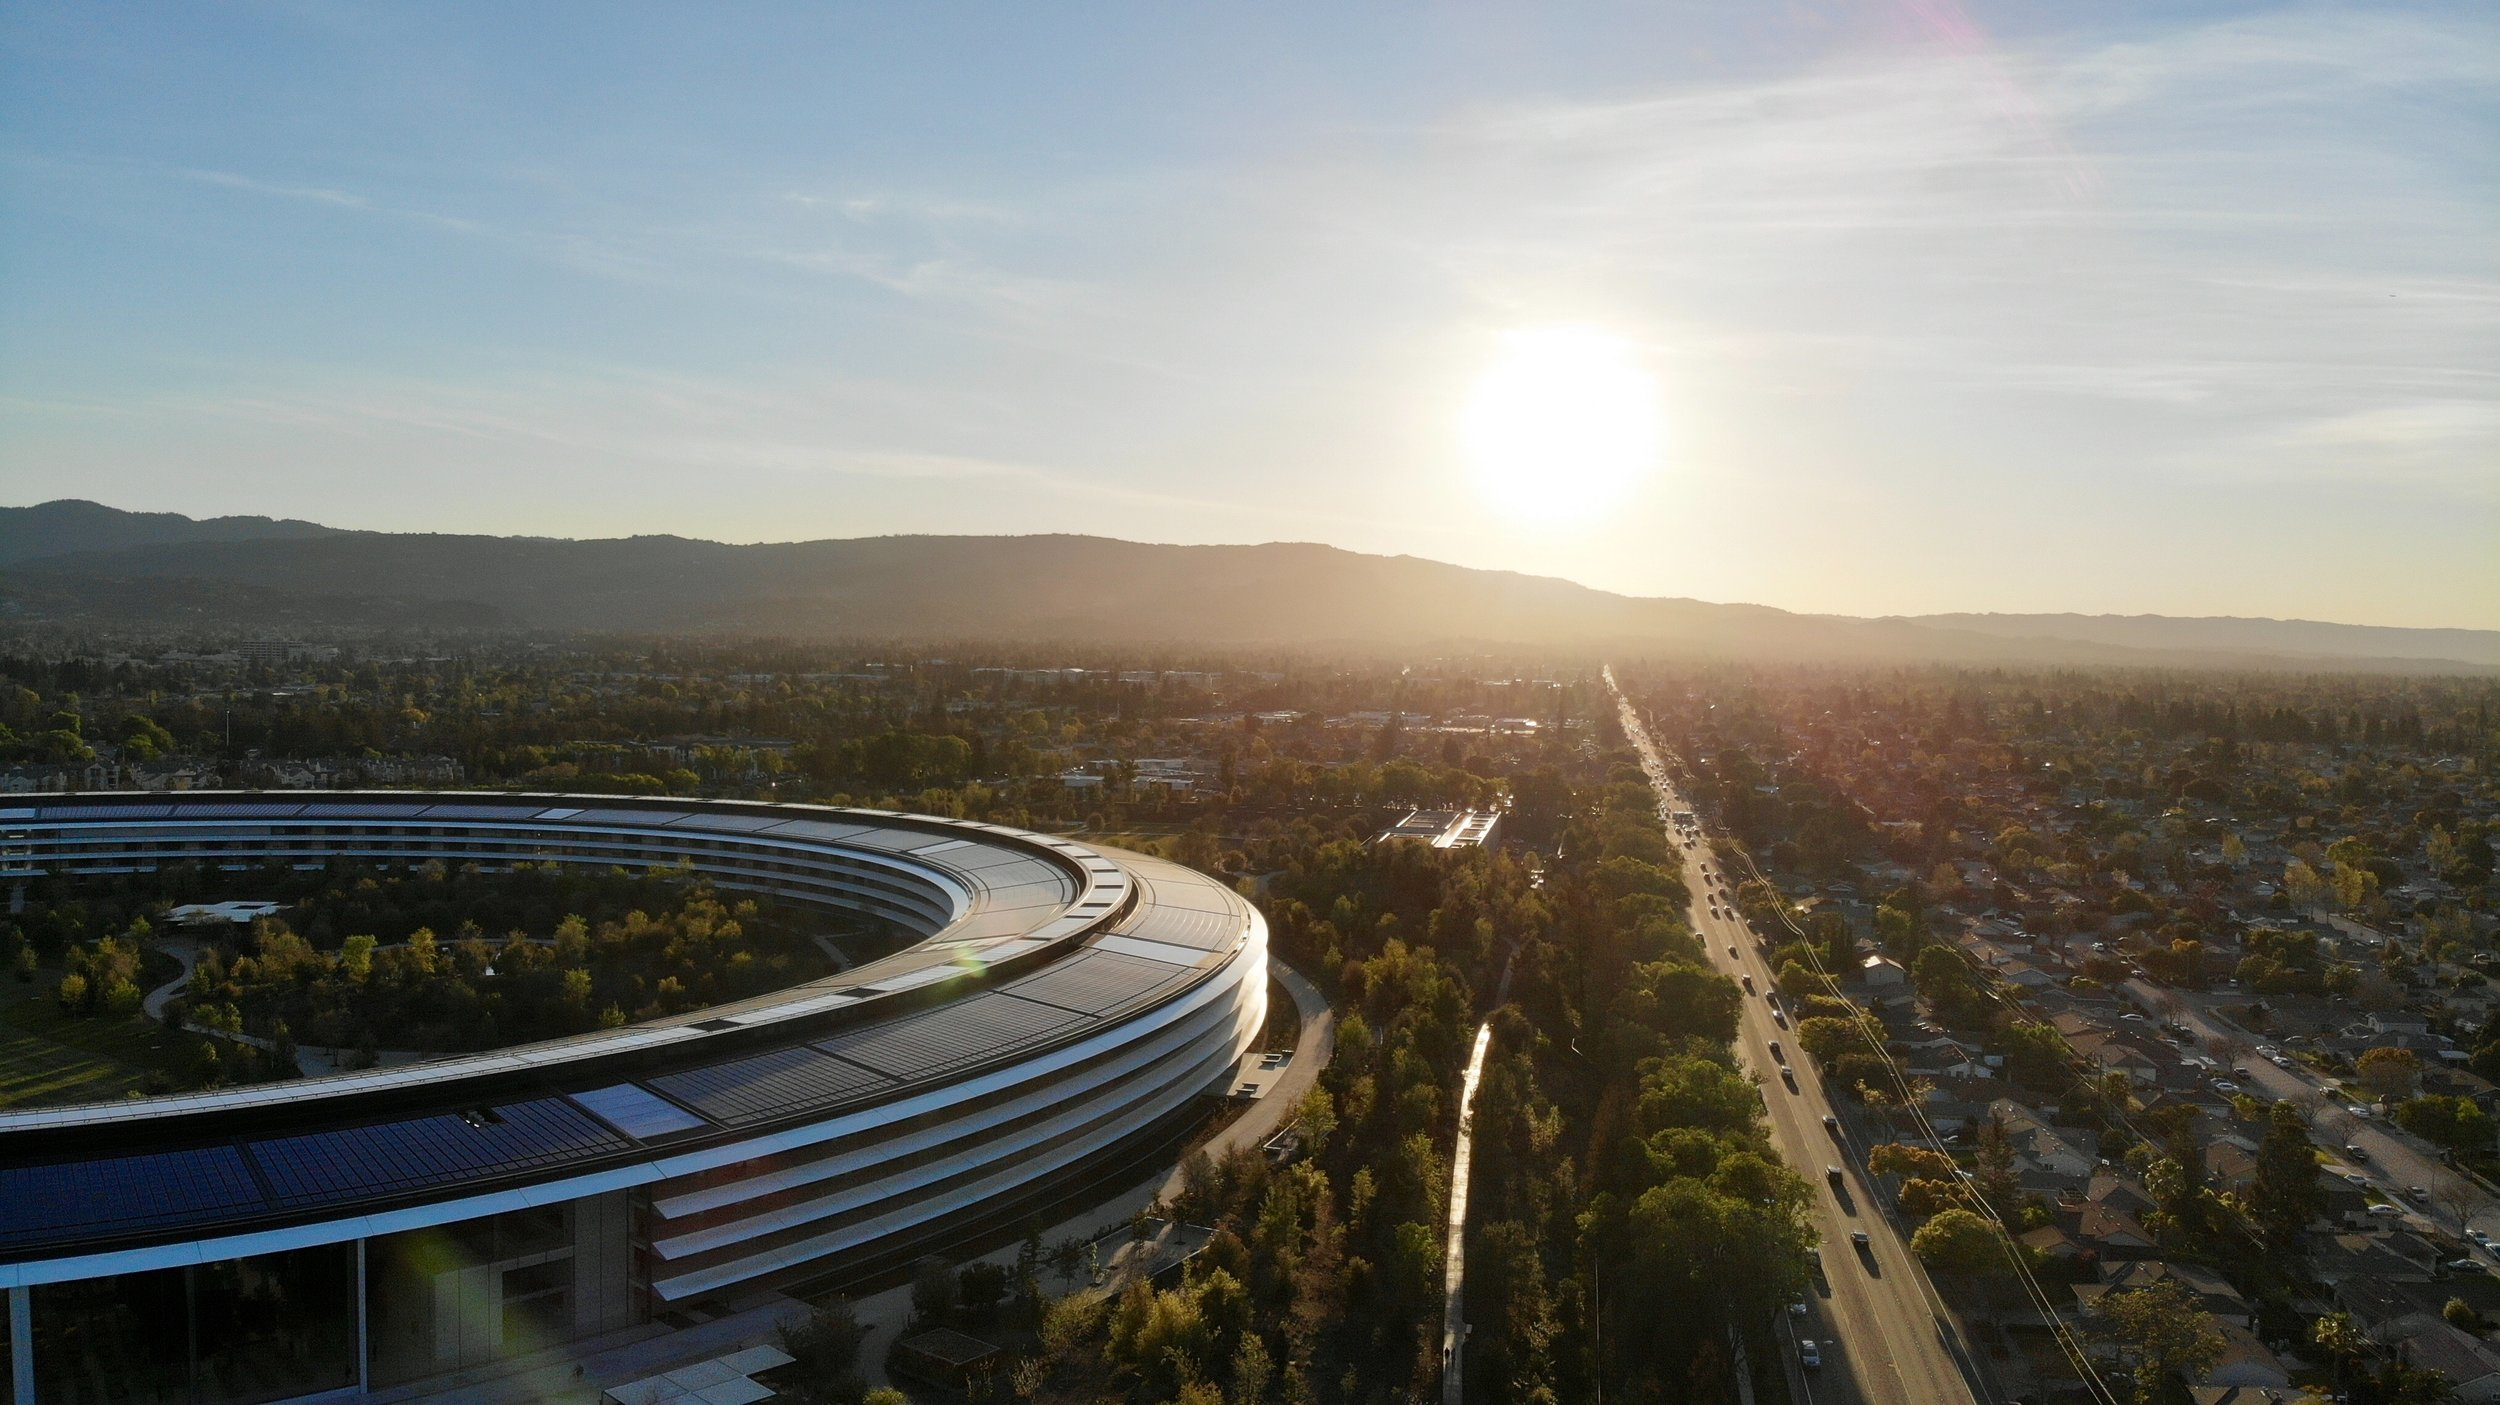 Born and raised in Cupertino, home of Apple, Inc., I am thrilled to represent clients in my hometown and surrounding neighborhoods. My knowledge of the neighborhoods over the past 30 years allows me to guide clients to making their best choice for the life they want.